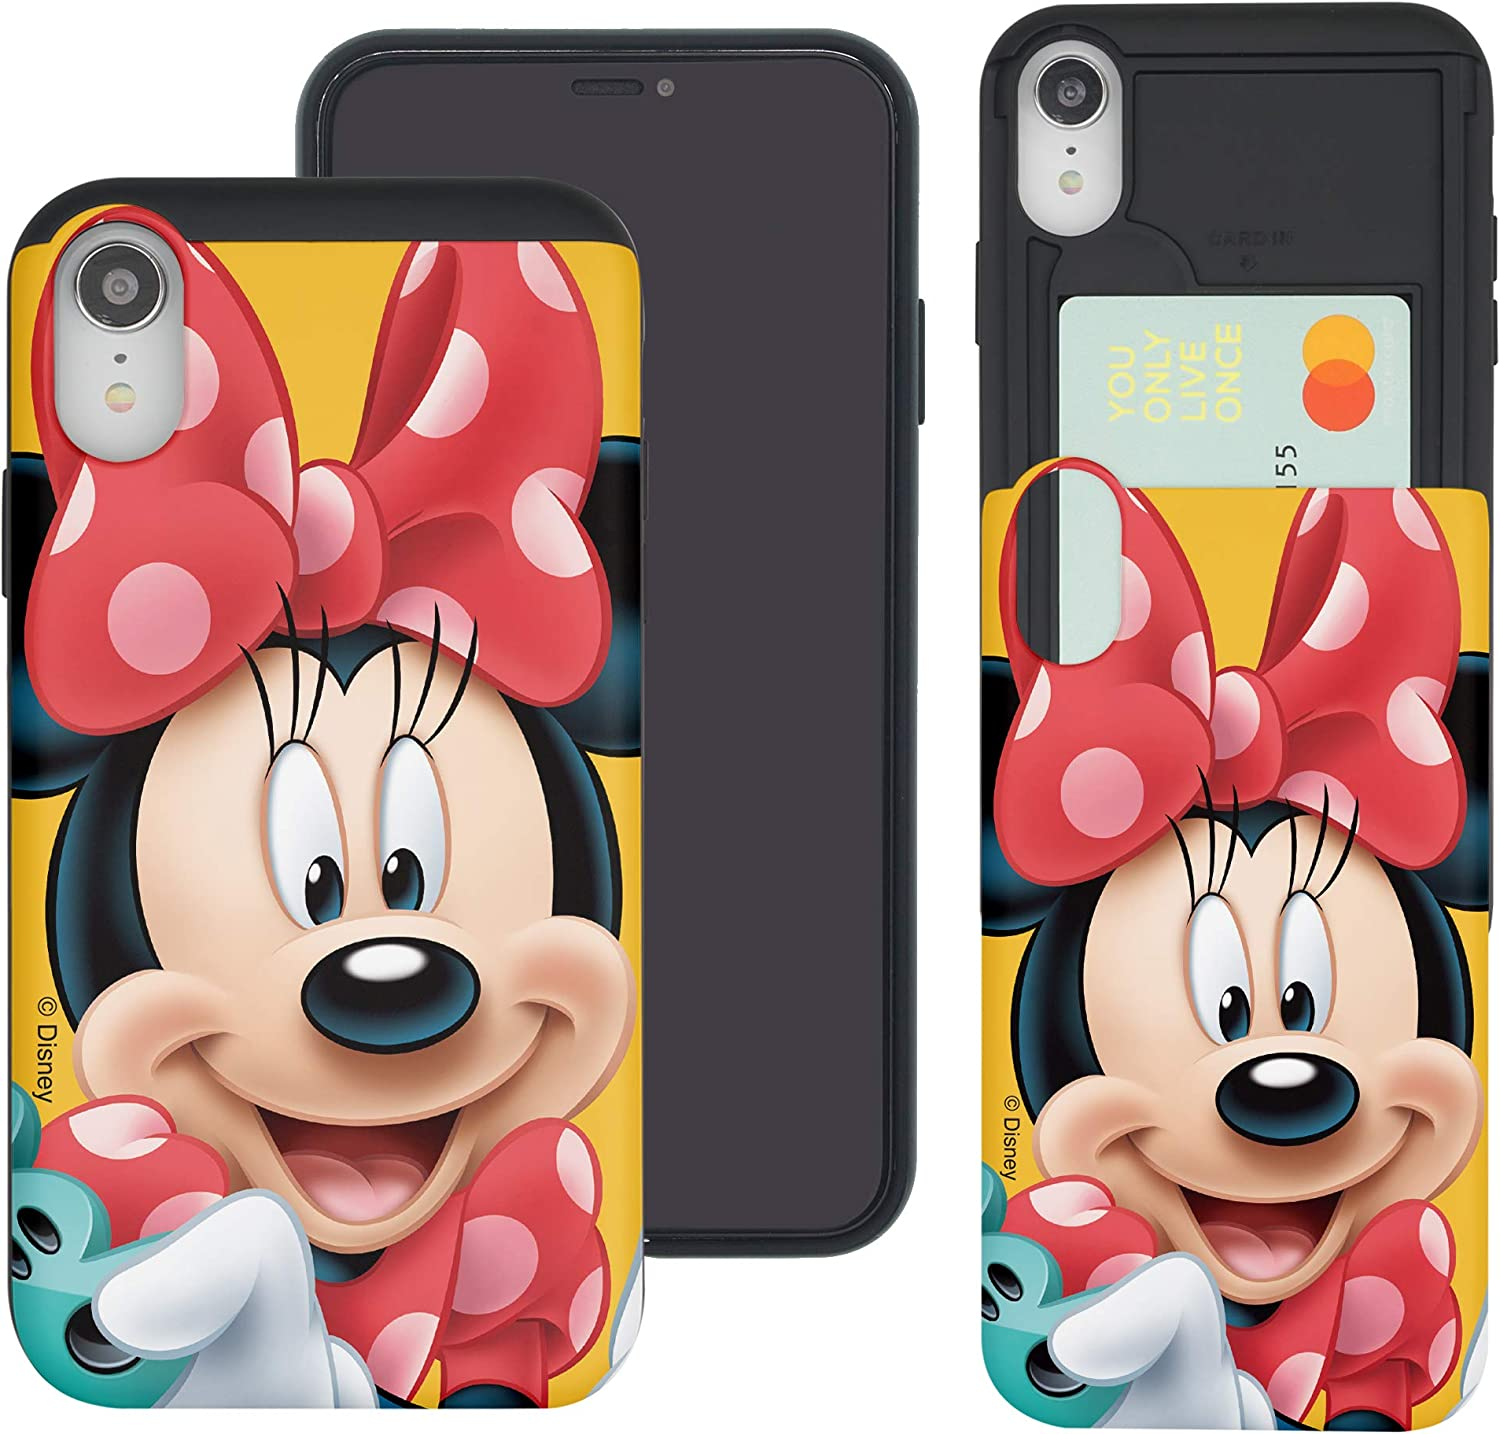 WiLLBee Compatible with iPhone Xs Max Case Dual Layer Card Slide Slot Wallet Bumper Cover - Smile Minnie